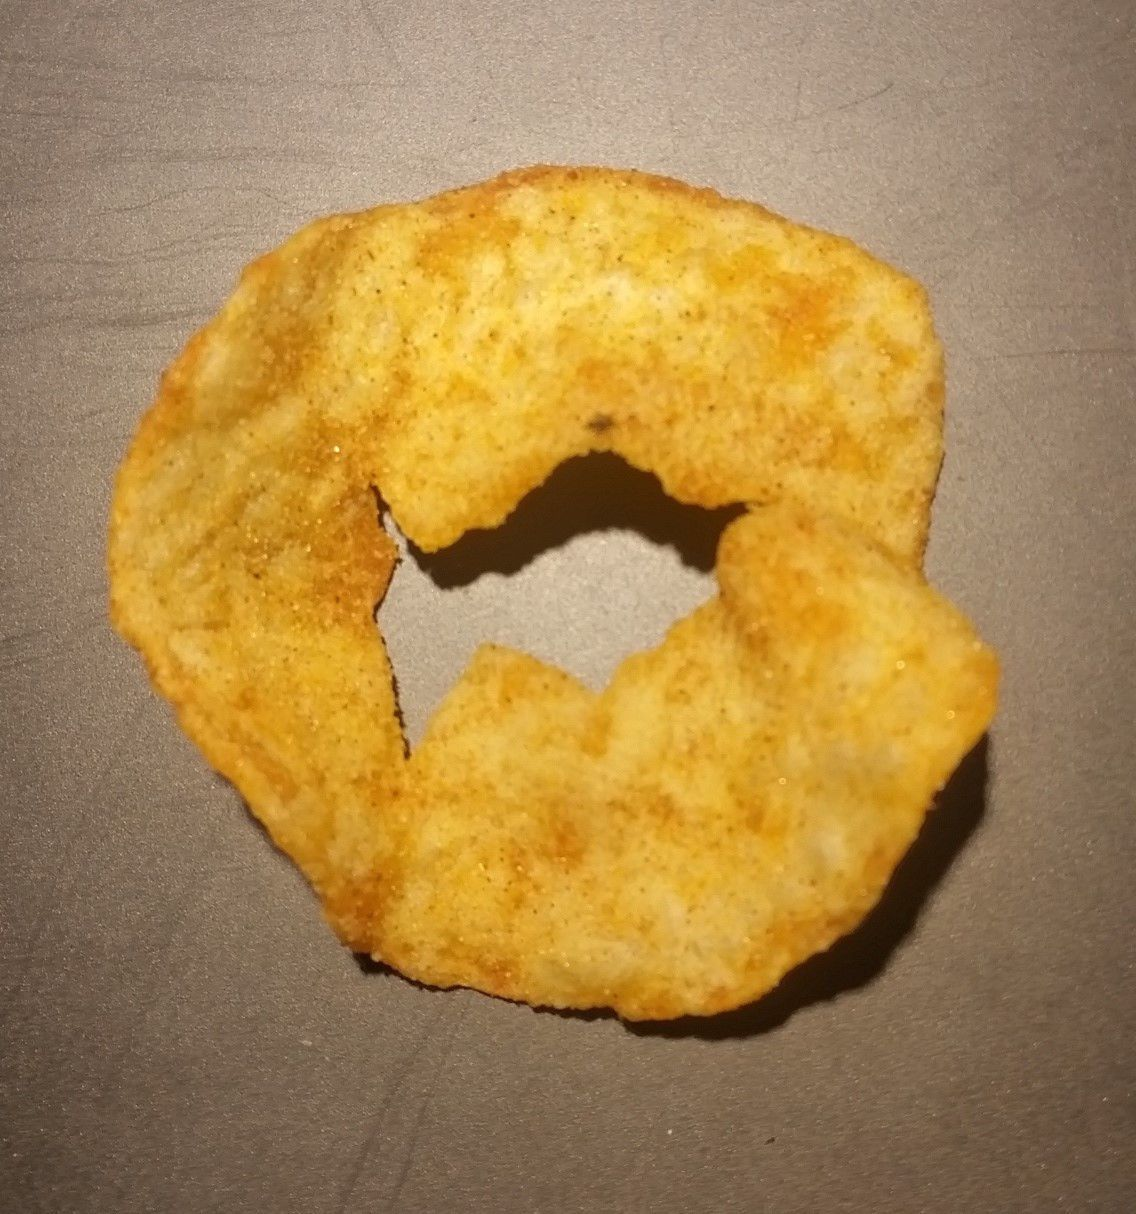 Chips 179179: Potato Chip Shaped Like Nemo Fish - Cut Out - Weird Shape -> BUY IT NOW ONLY: $4500 on eBay!